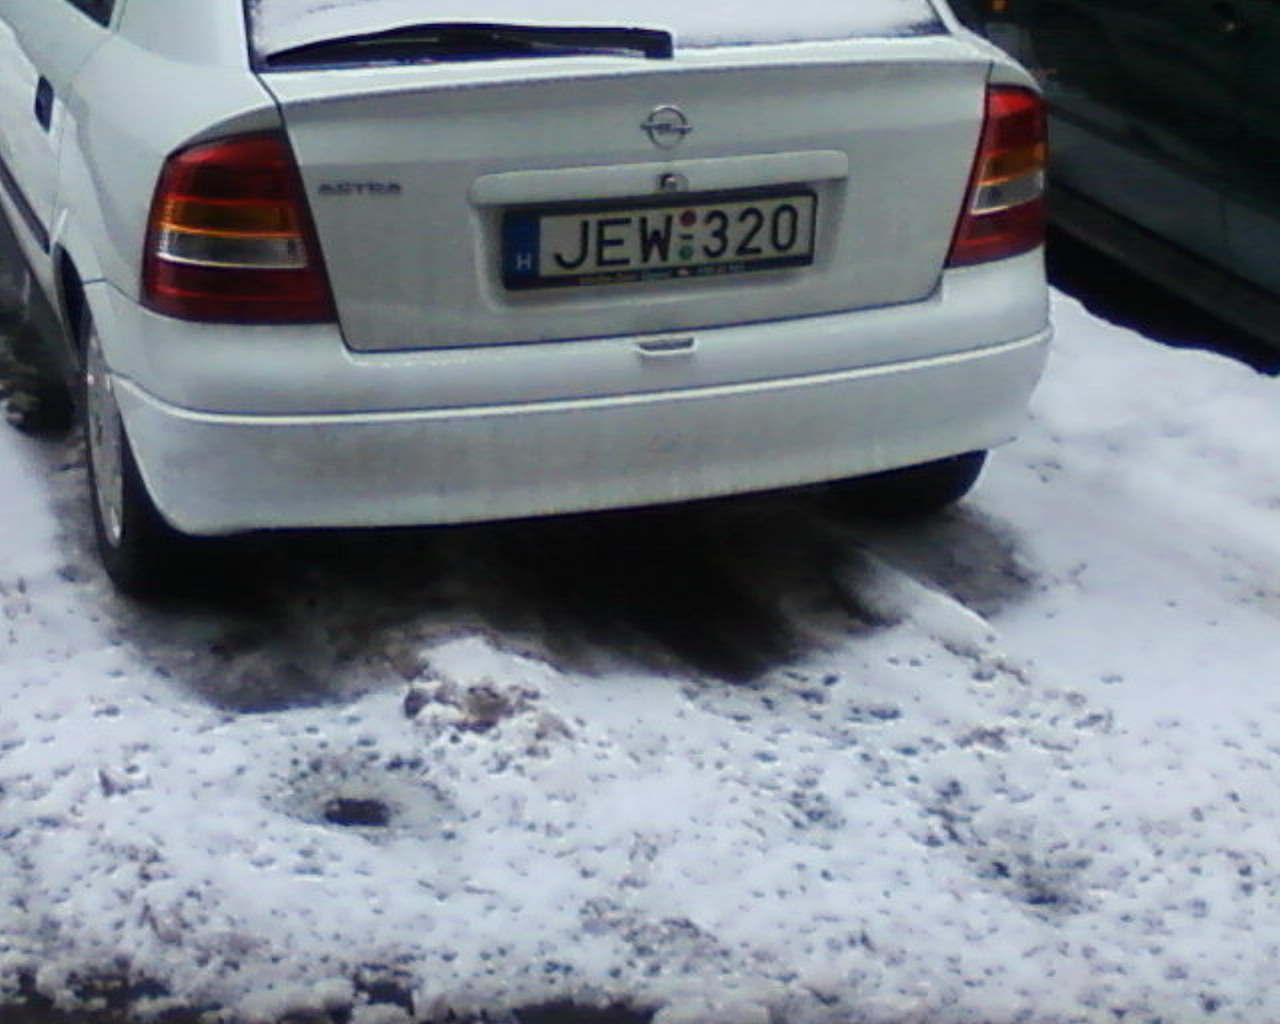 Funny Hungarian license plate :)